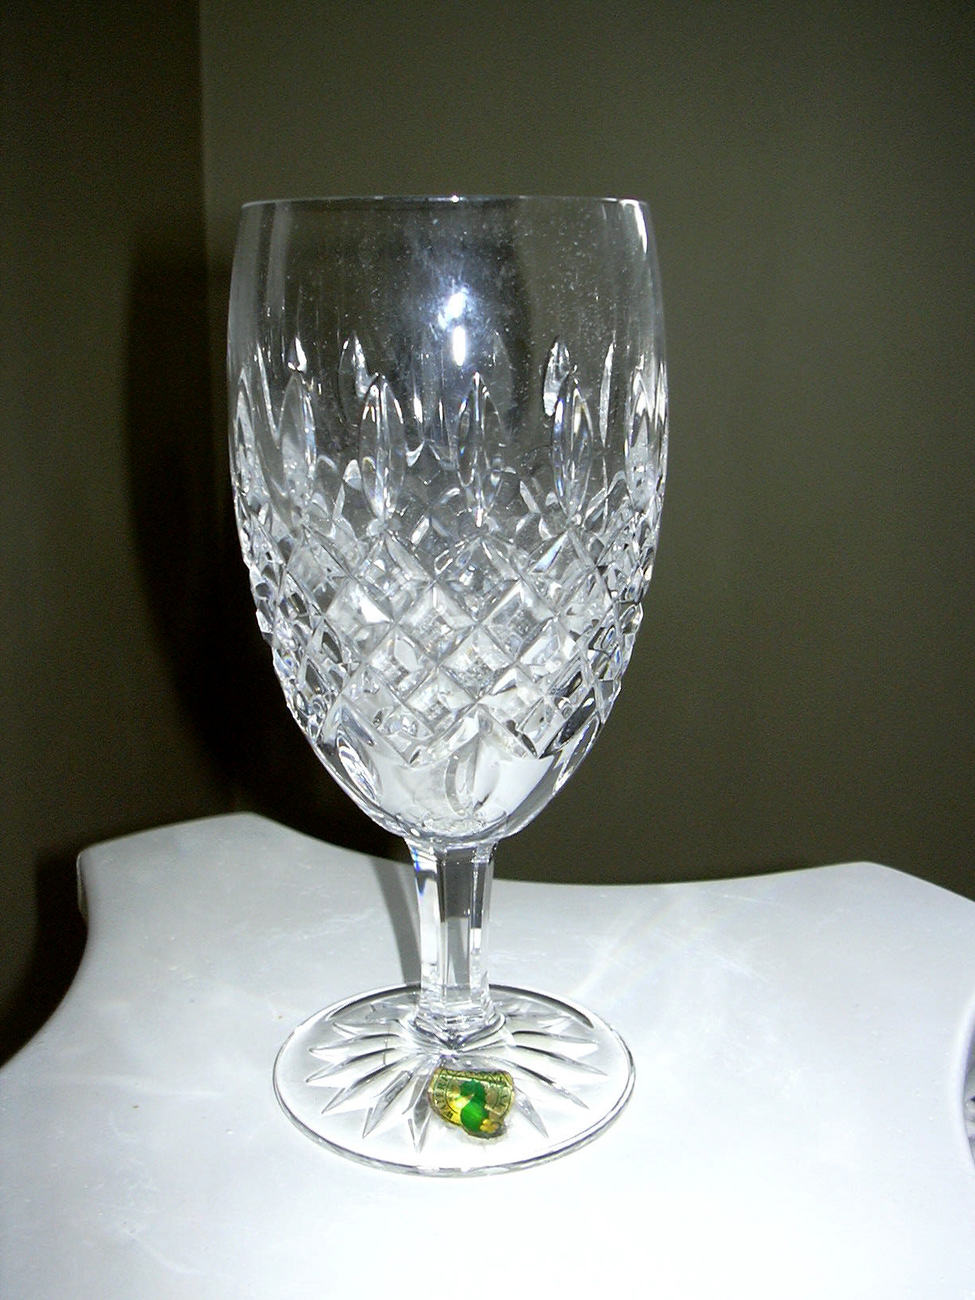 WATERFORD CRYSTAL SET OF 4 ICED BEVERAGE GLASSES NEW